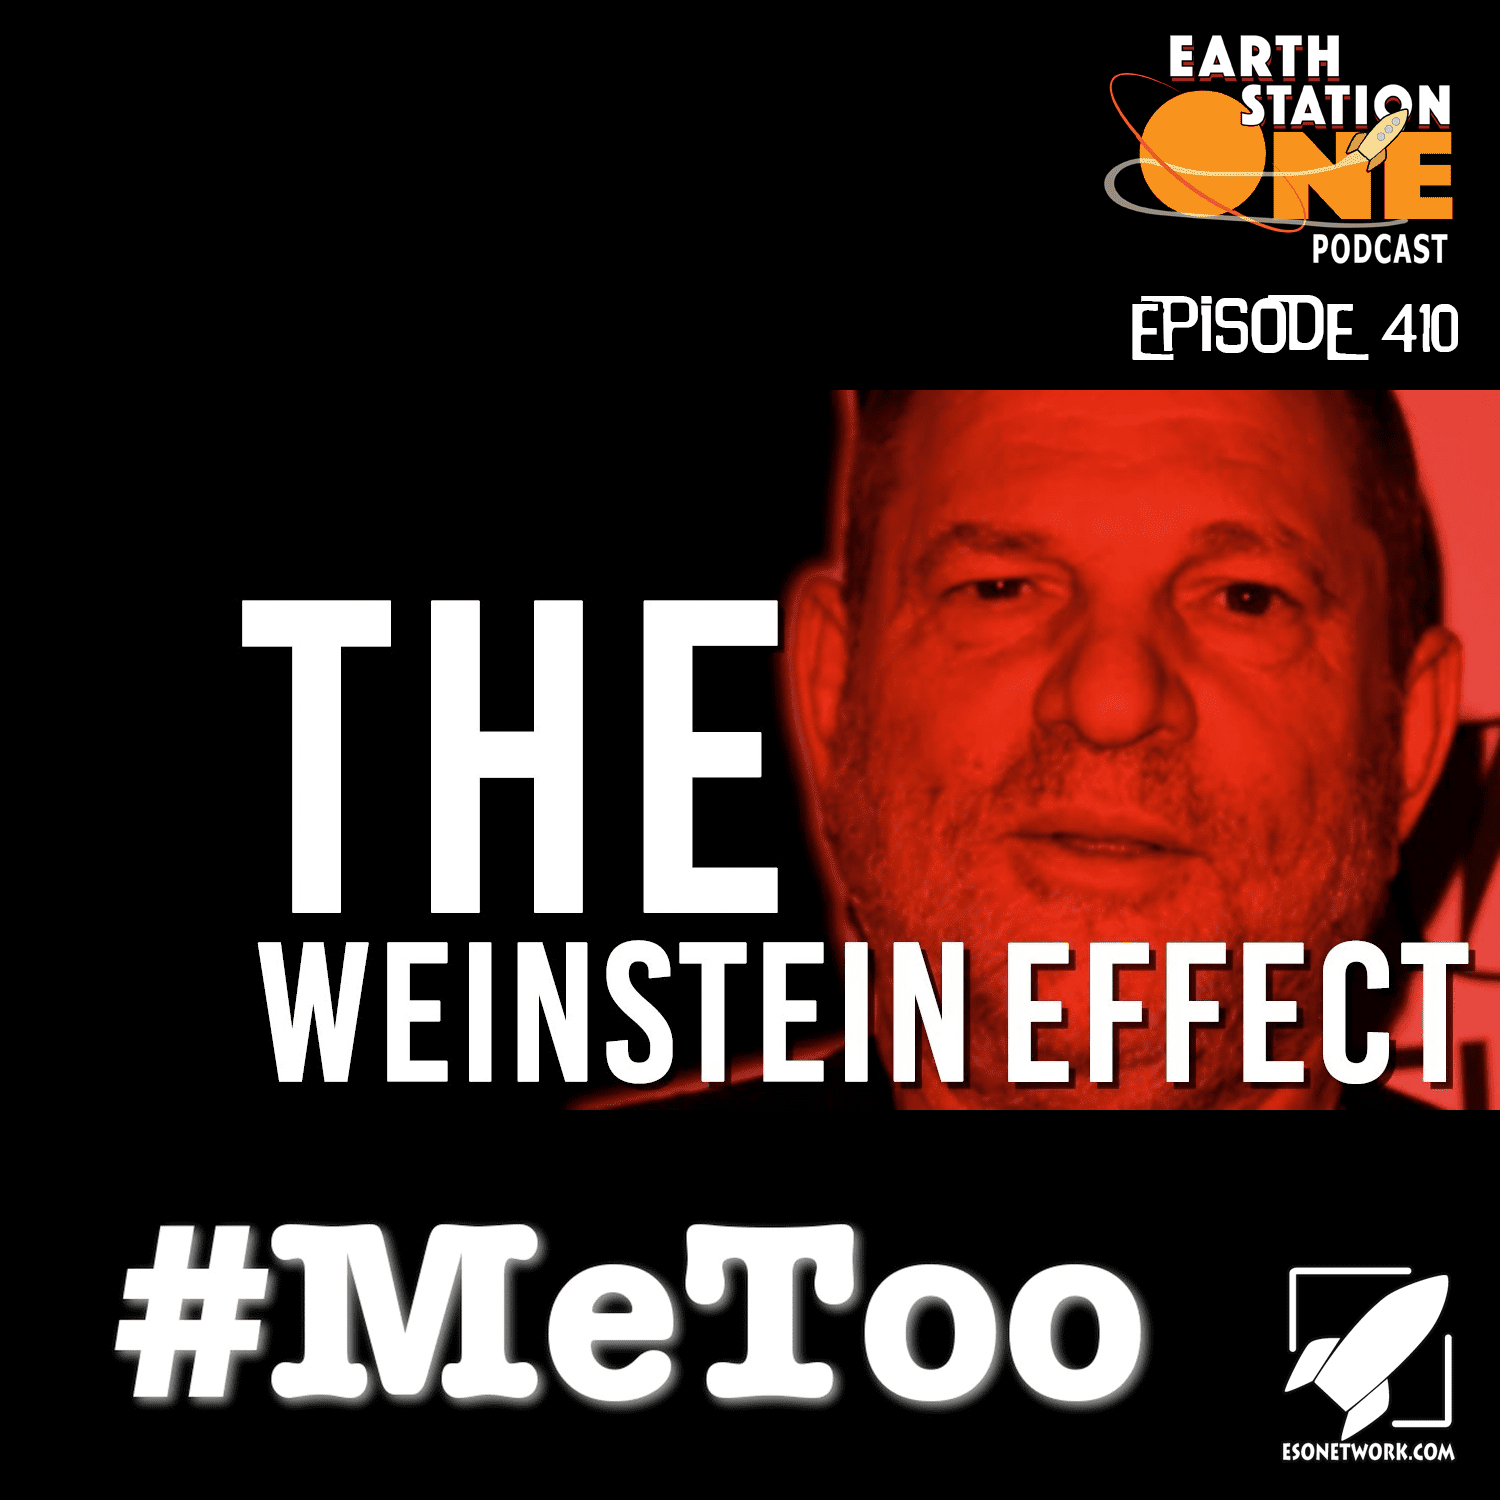 The Earth Station One Podcast Episode 410 - The Weinstein Effect